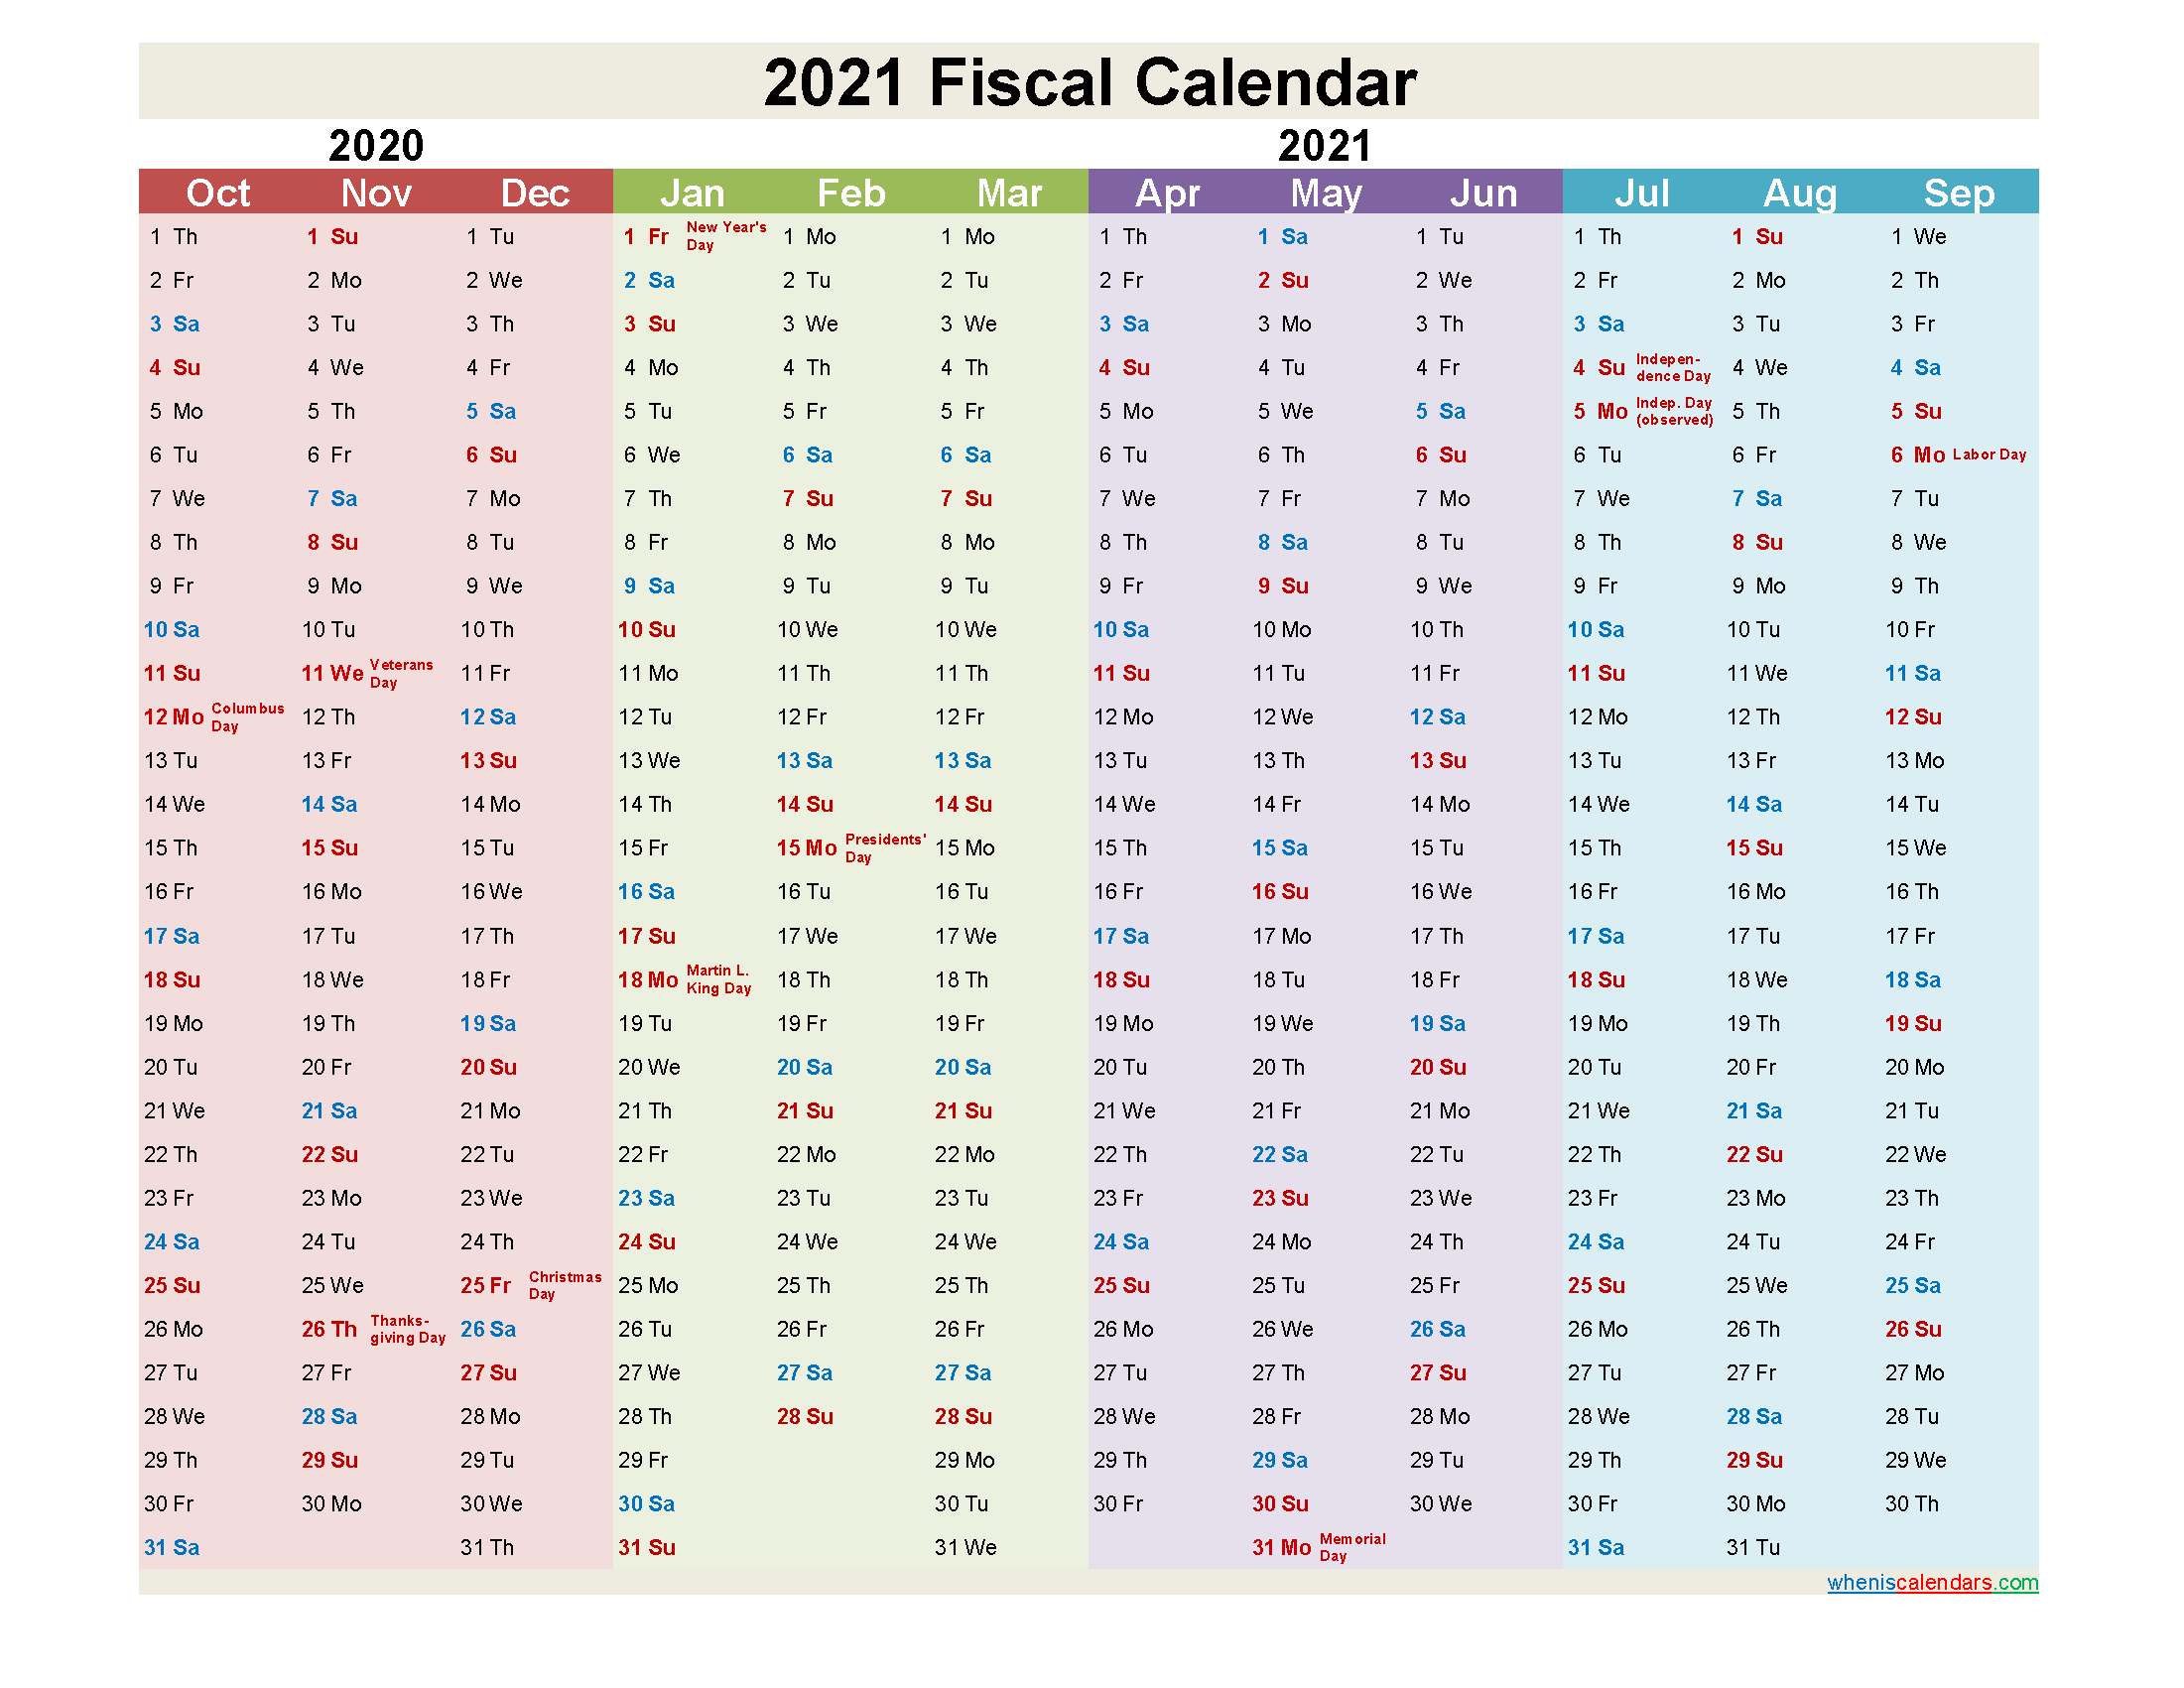 Fiscal Year 2021 Quarters